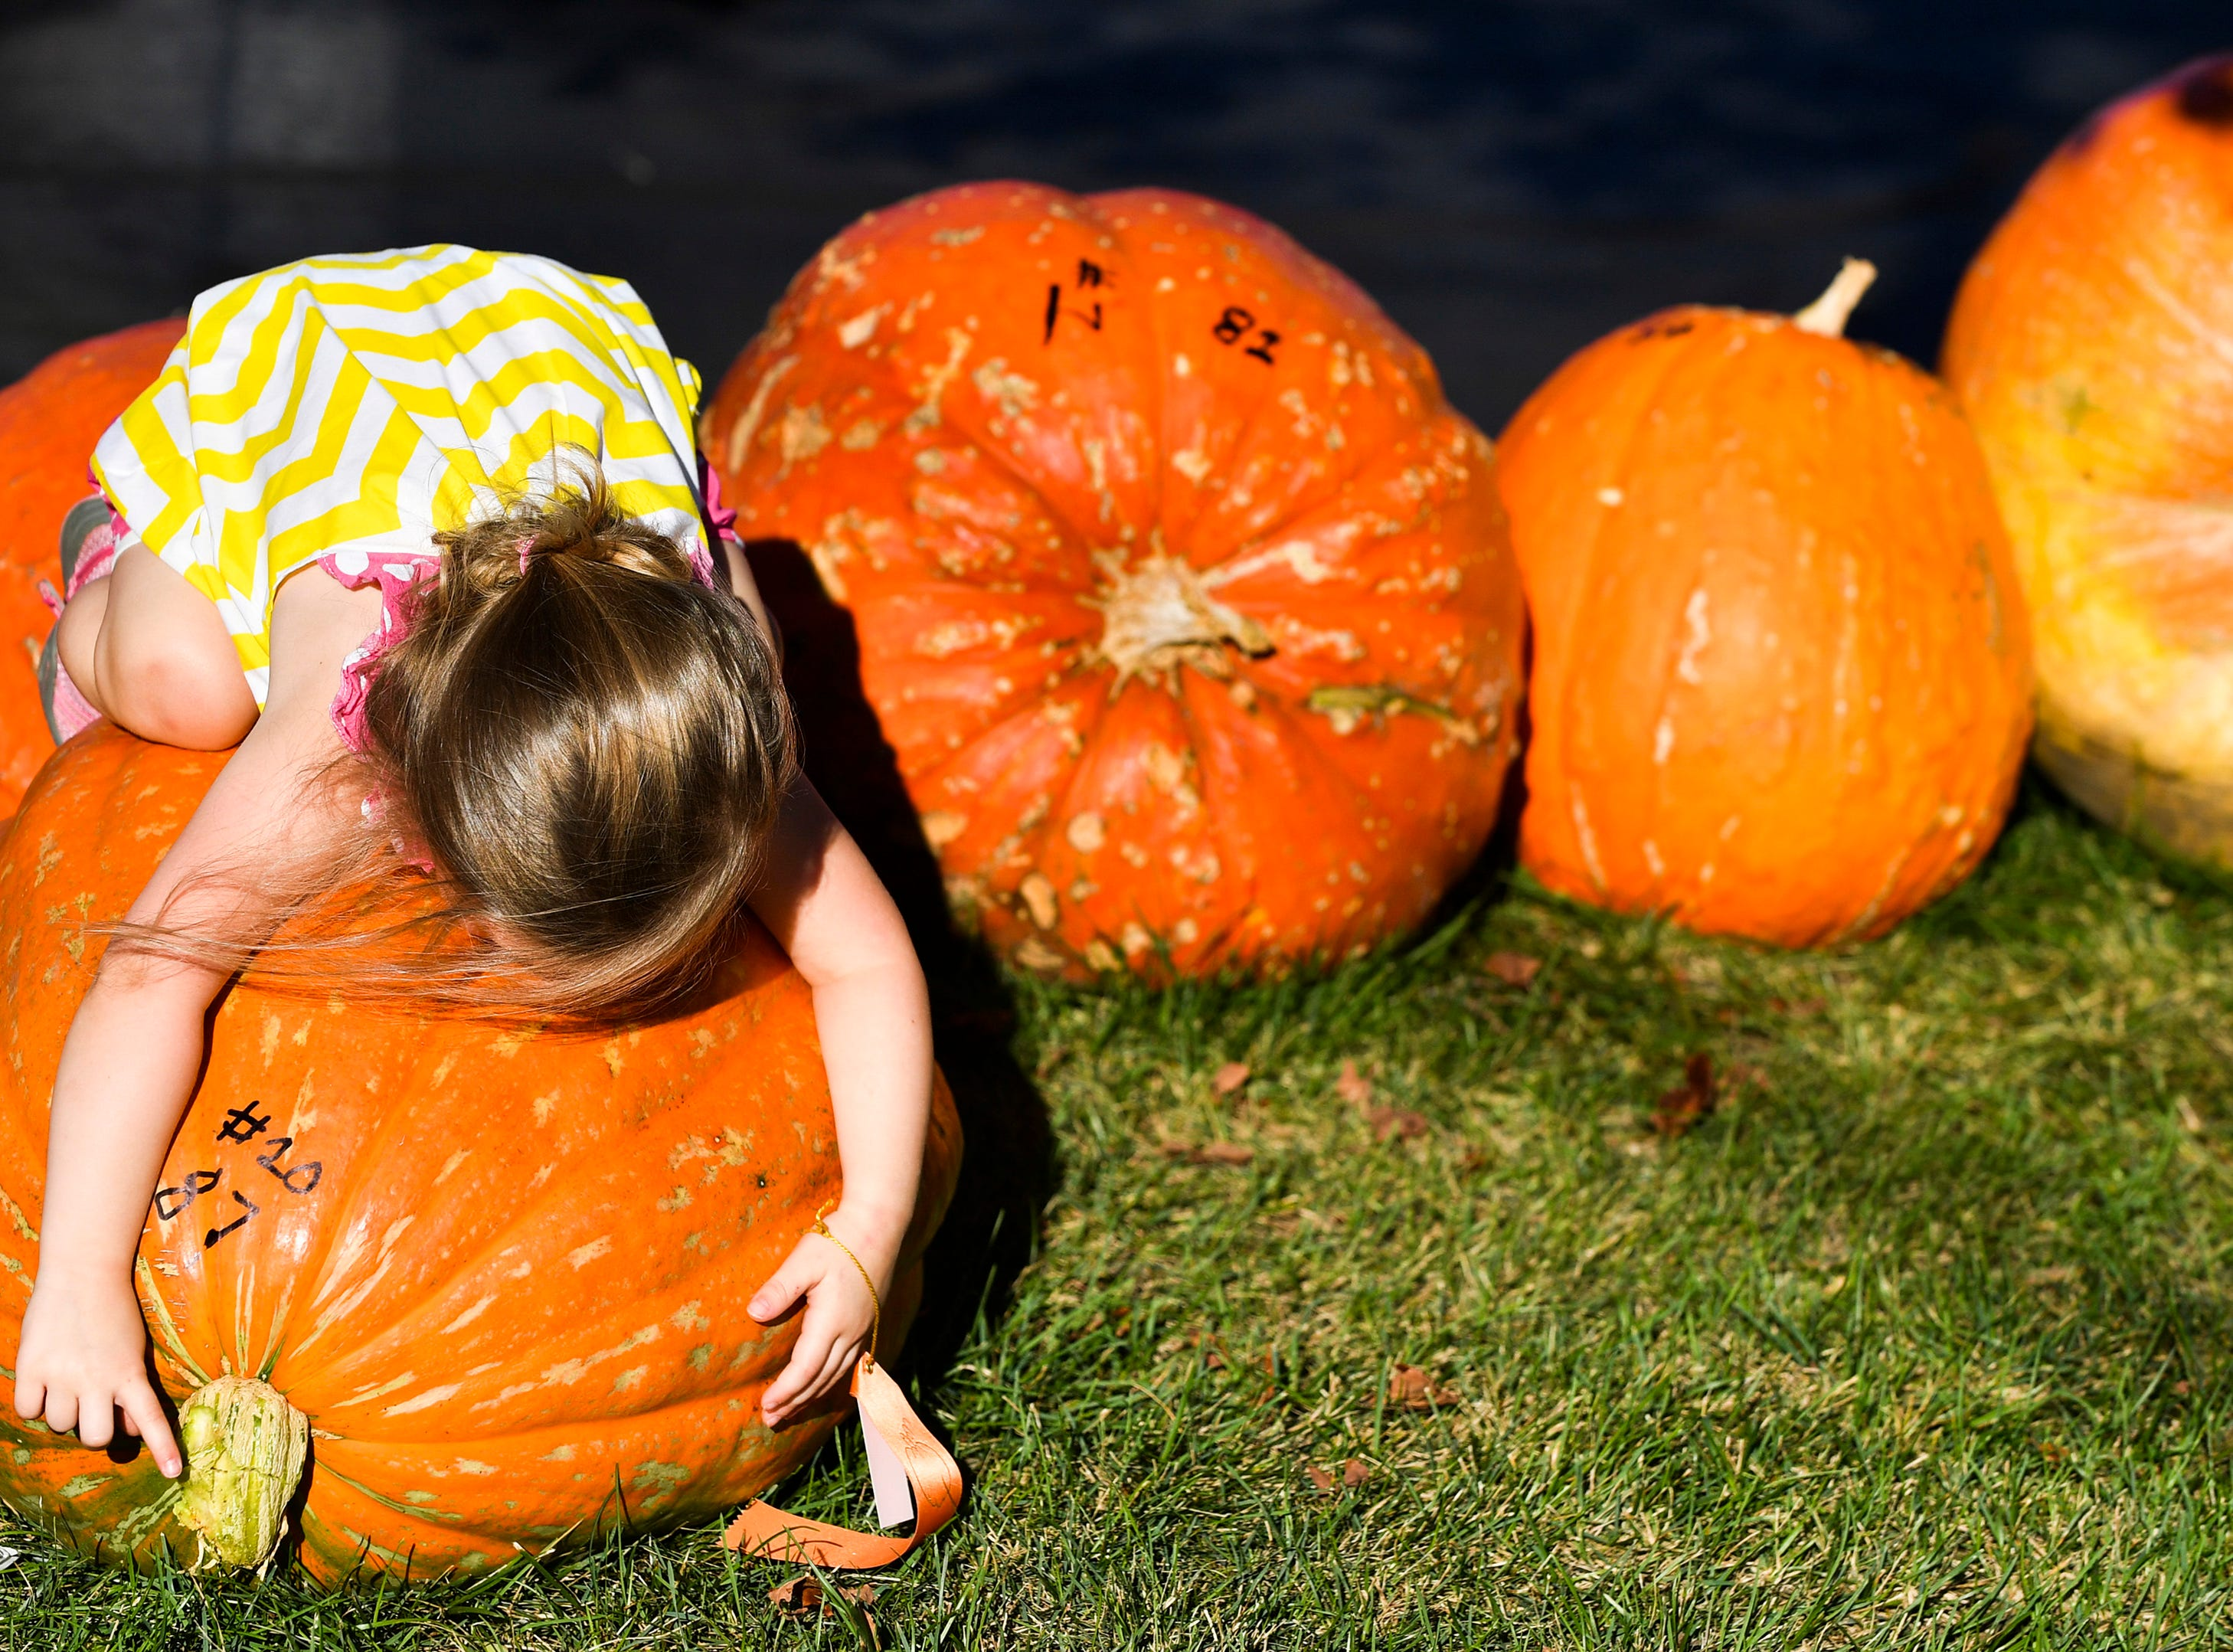 Three-year-old Abagail Koch of Morton, Ill., wraps her arms around her 87 pound pumpkin entered in the Morton Pumpkin Festival Pumpkin Weigh Off in Morton, Ill., on Tuesday, Sept. 11, 2018. (Ron Johnson/Journal Star via AP) ORG XMIT: ILPEO101